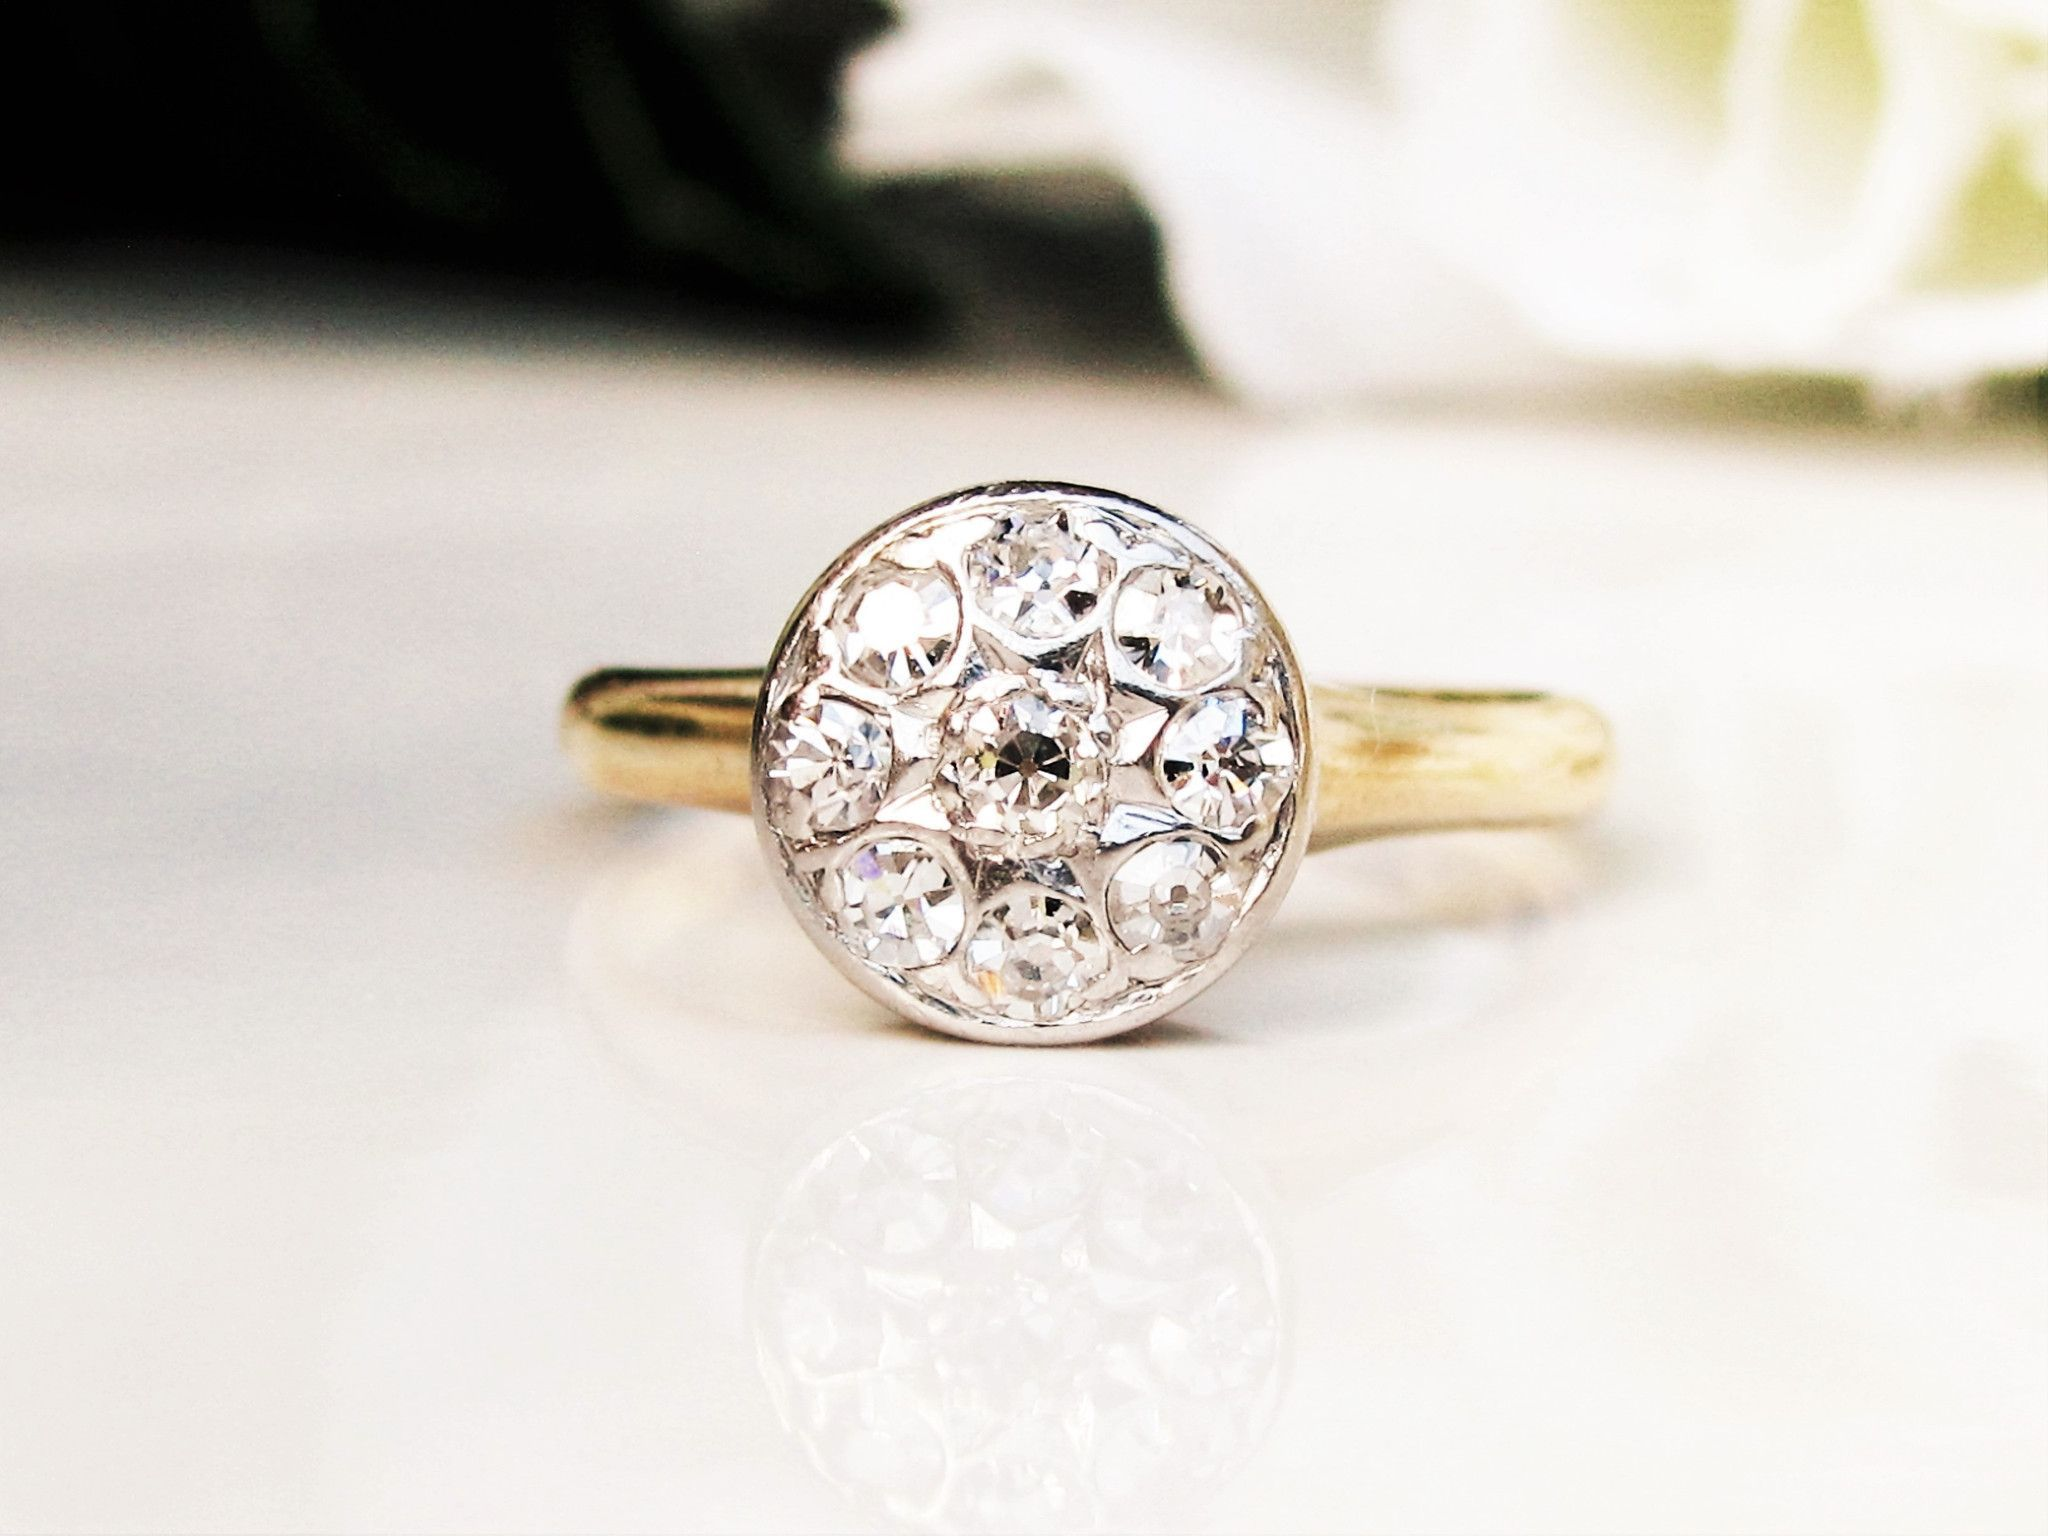 jewellery ring engagement yellow melissa gold products diamond shopify harris daisy